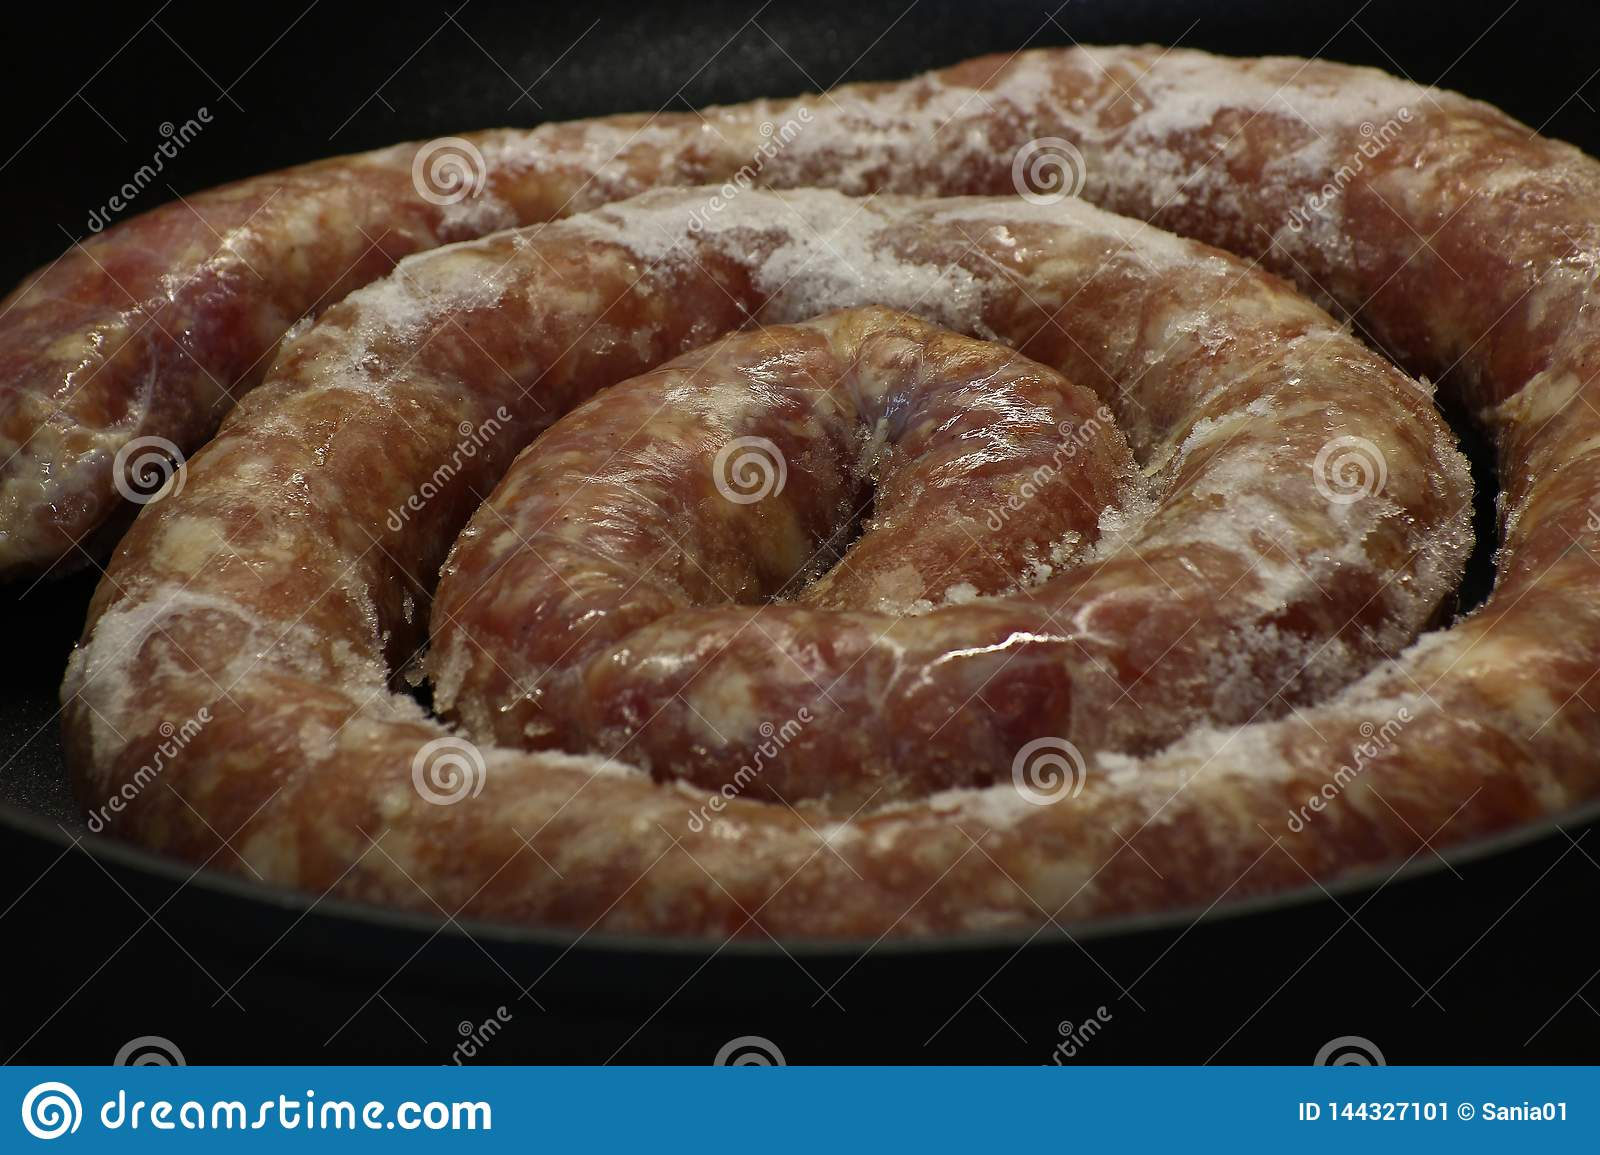 Homemade sausage, twisted meat is formed in the form of a long sausage. finger shoved sausage. simple meal. wrapped with a ring